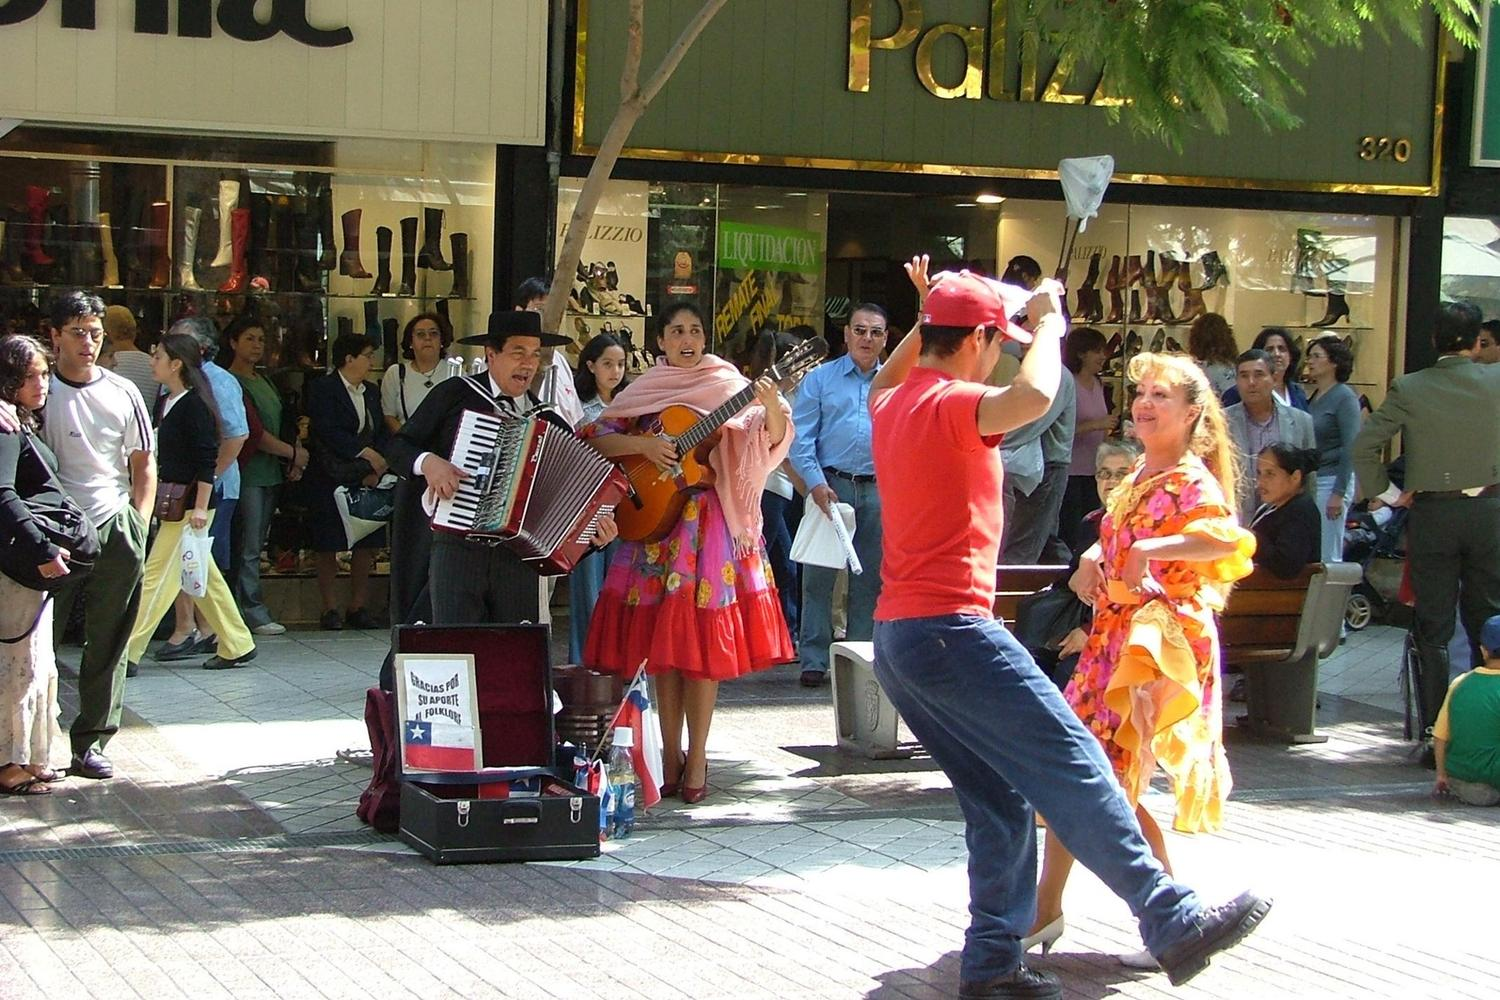 Traditional cueca dance of Chile, performed on the streets of Santiago